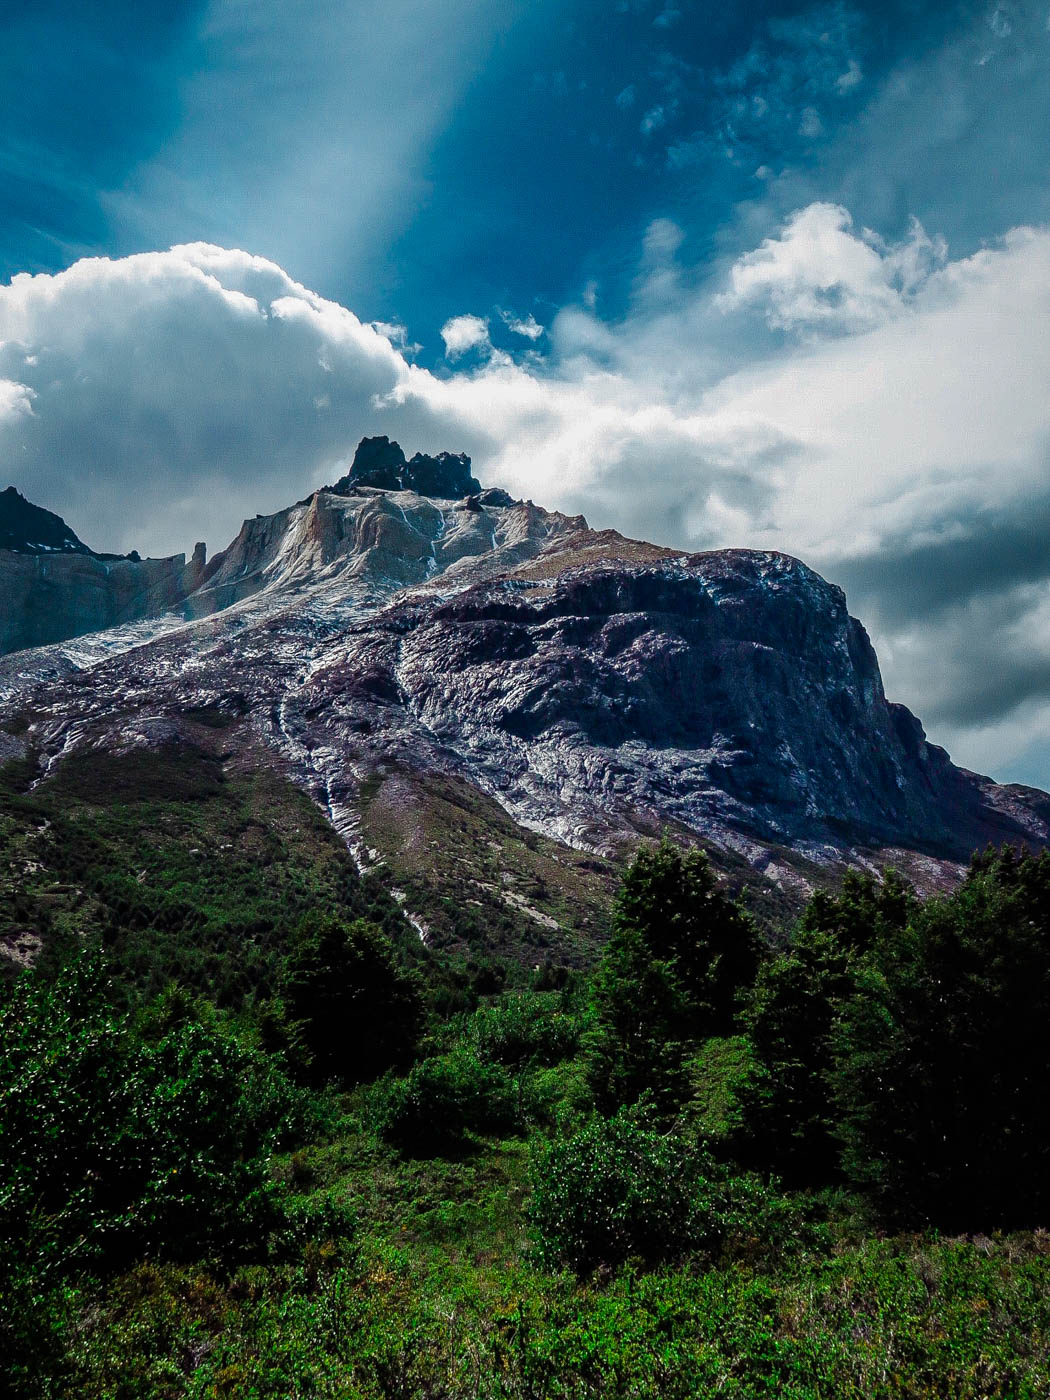 Torres del Paine I South America Travel Bucket List. 90 Awesome Things to do in South America When Backpacking and Travelling #southamerica #bucketlist #traveldestinations -3